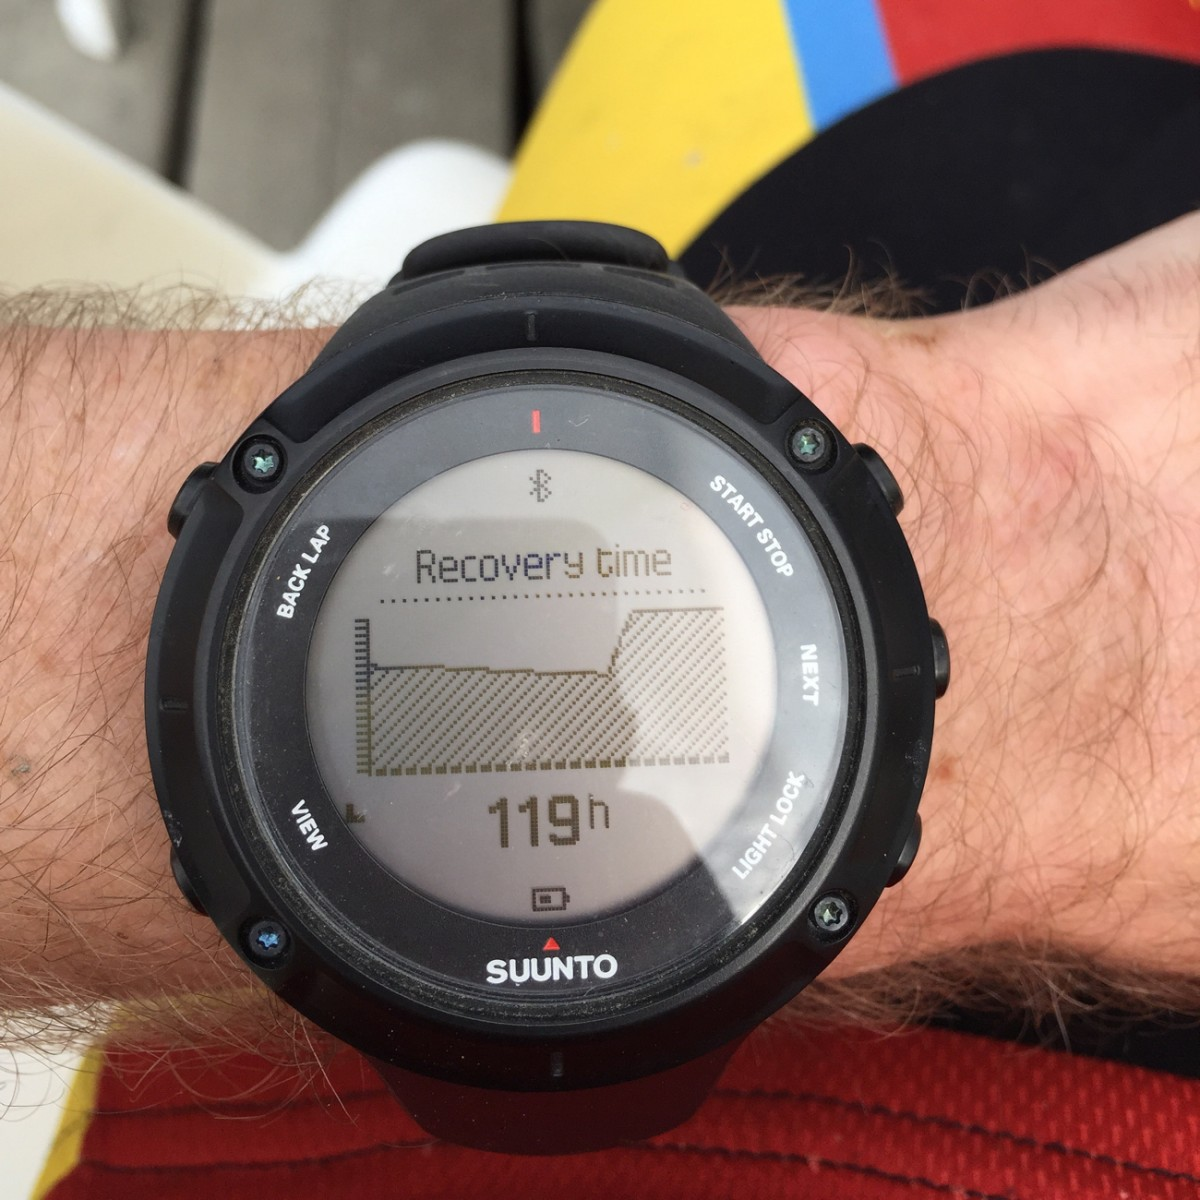 Review Suunto Ambit3 Peak Gps Unit Singletracks Mountain Bike News Sapphire Black Hr Watch For Outdoor Sports After Each Exercise The Will Calculate Your Recovery Time Based On How Many Calories